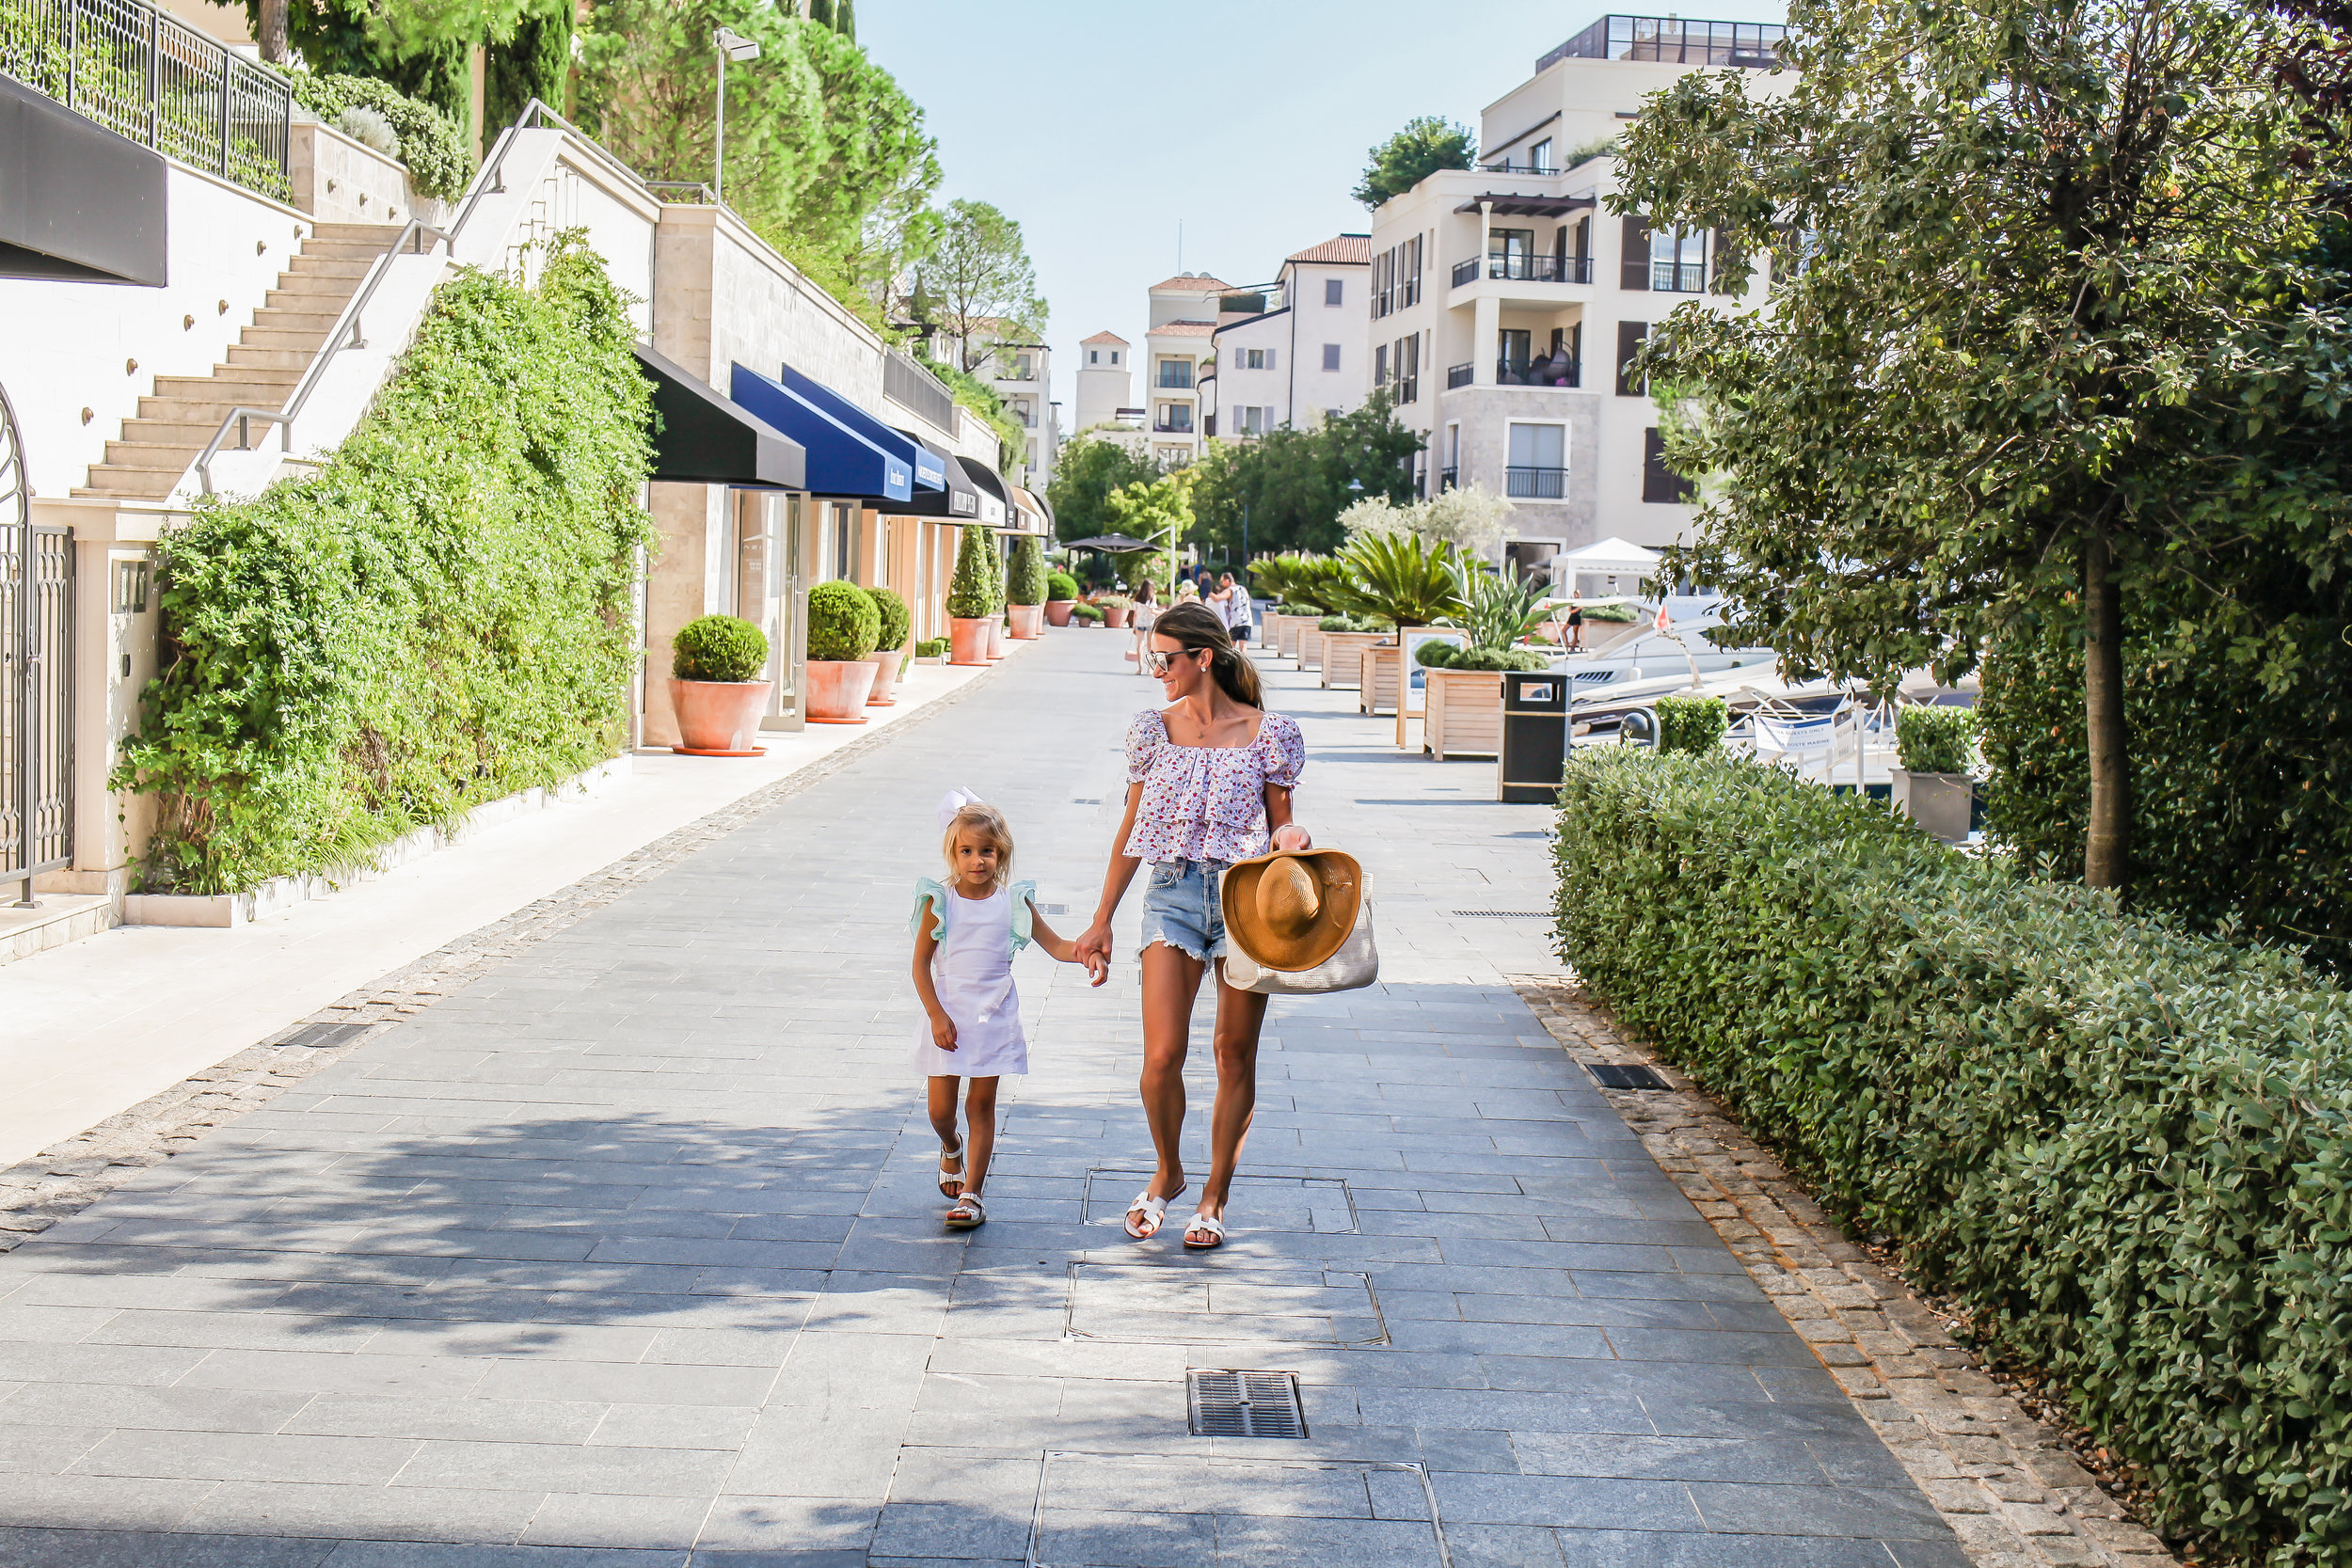 WALKING AROUNG THE SHOPS INSIDE PORTO MONTENEGRO